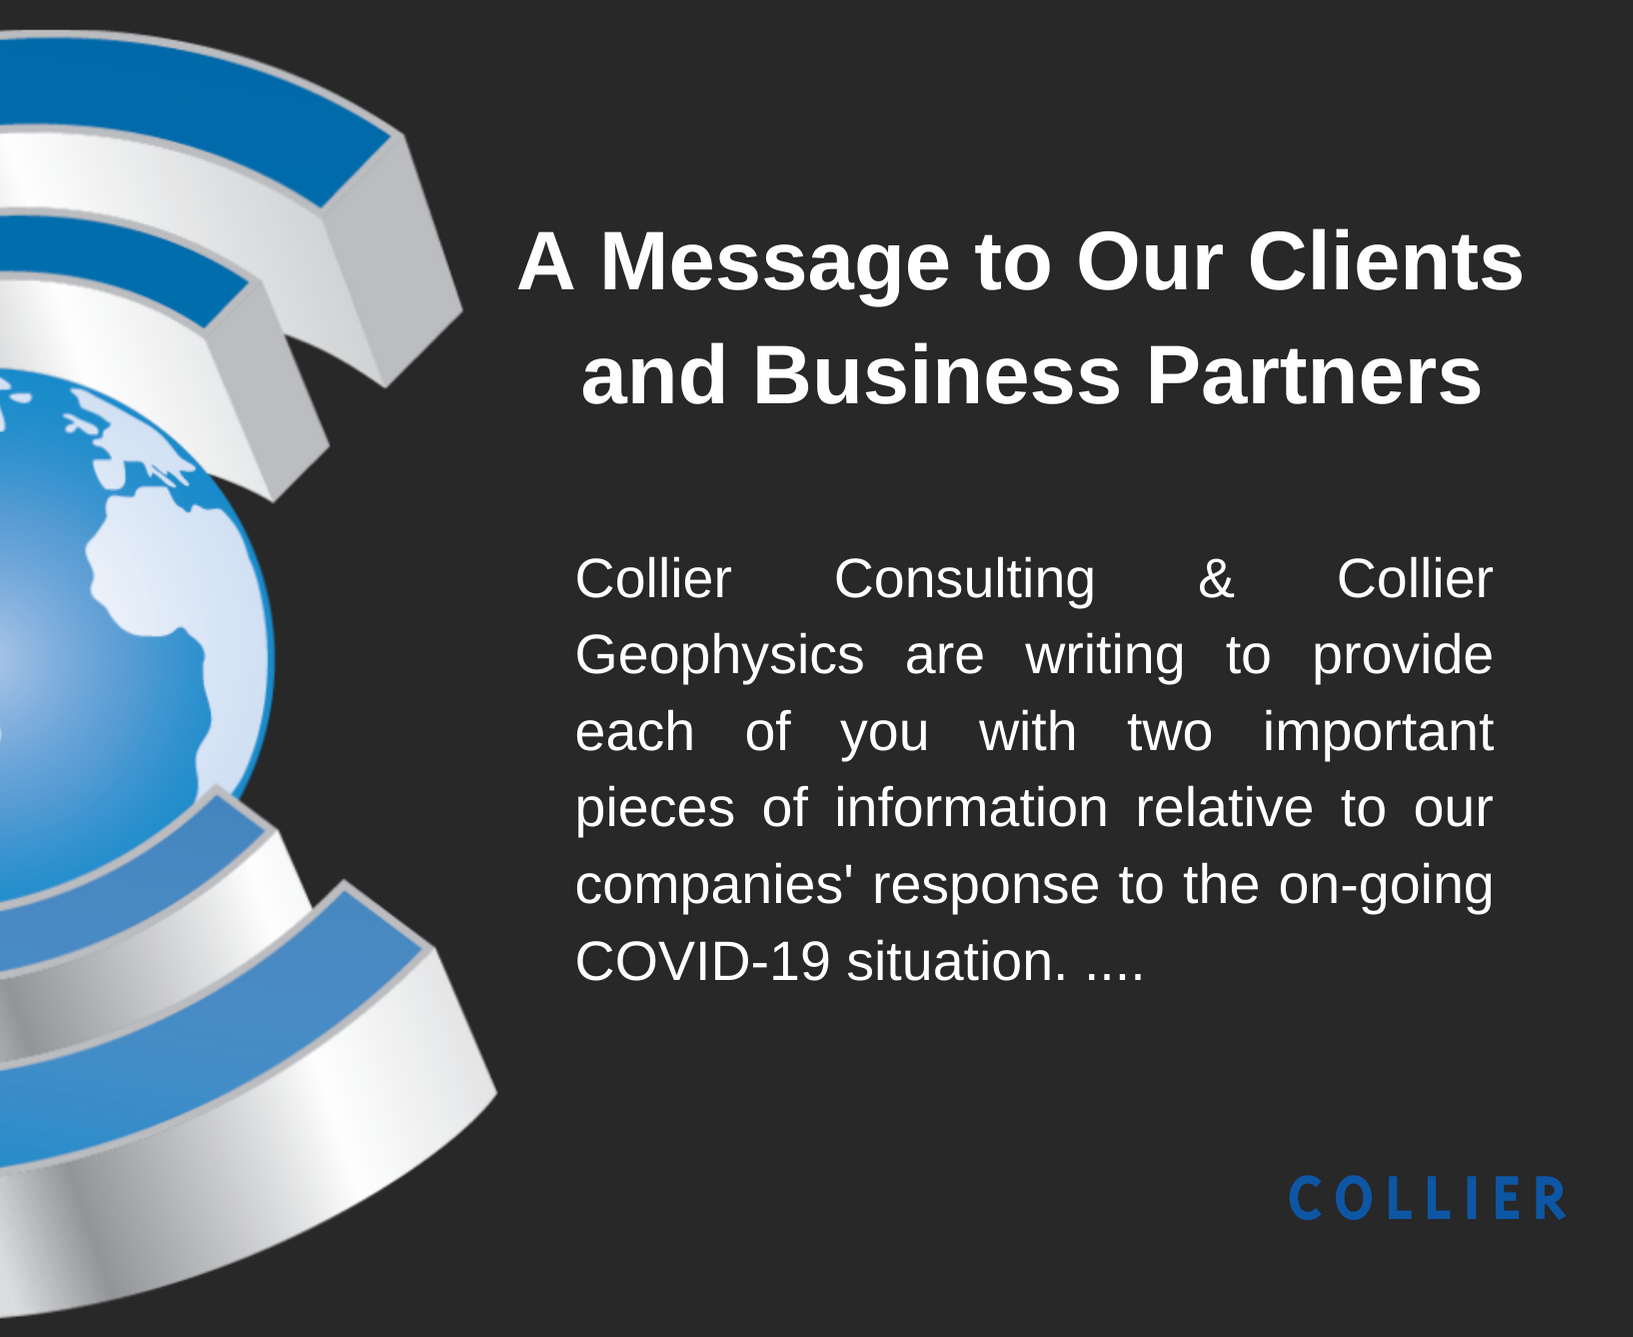 A Message to Our Clients and Business Partners